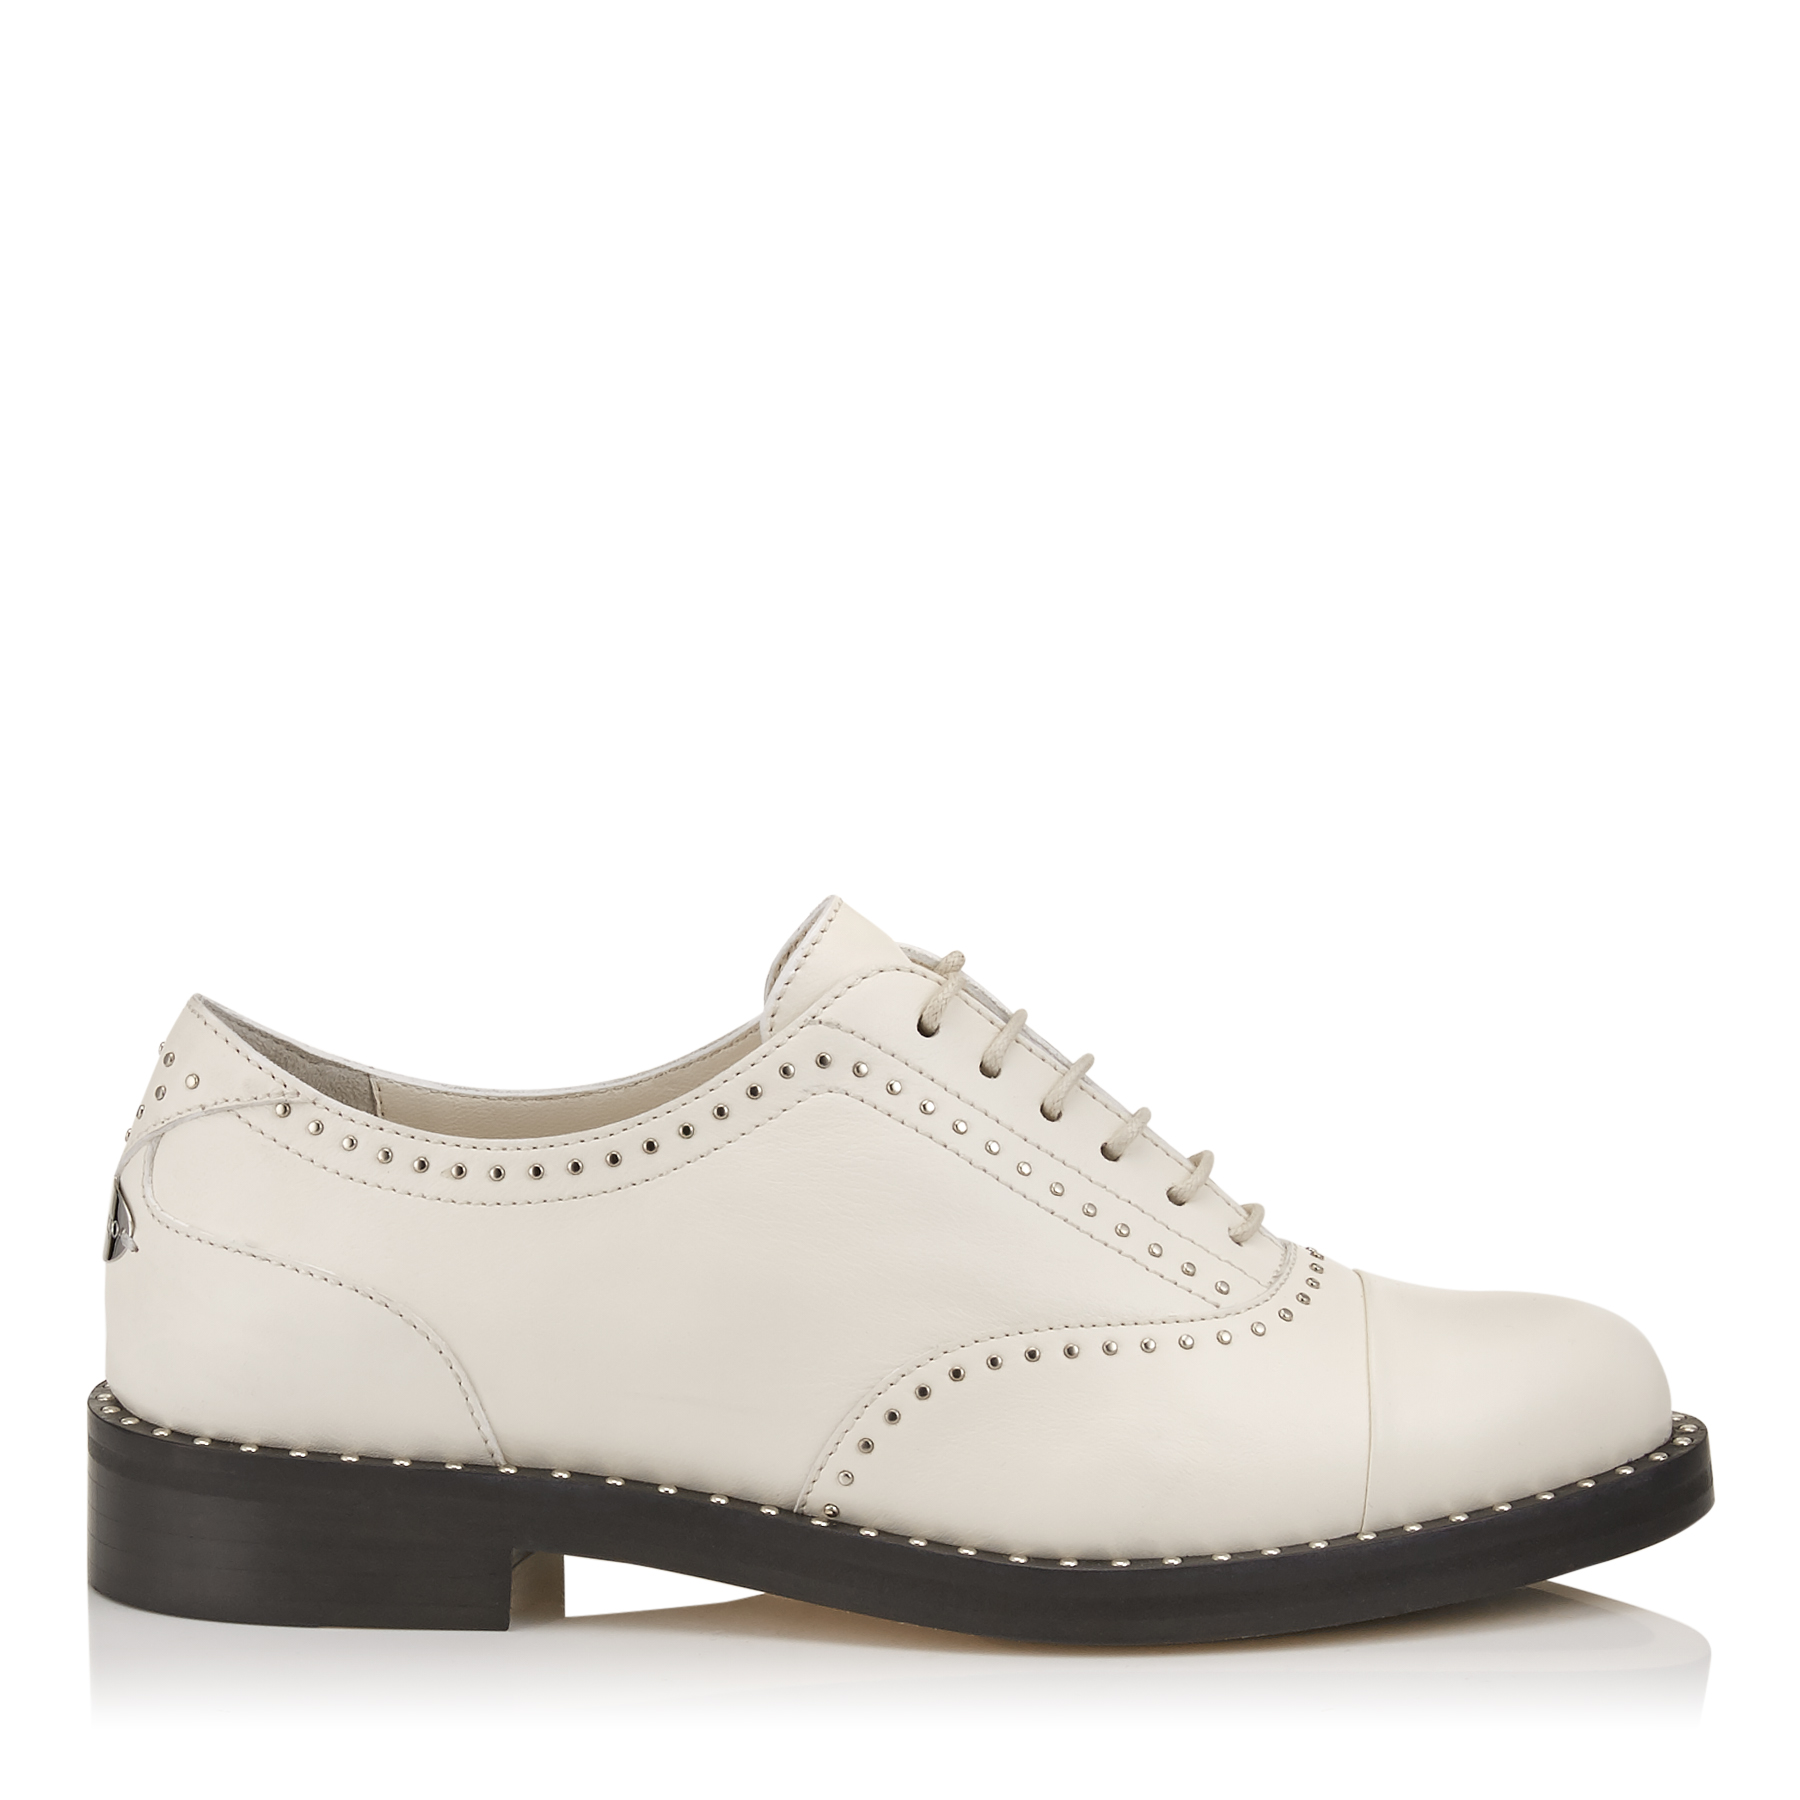 REEVE FLAT Chalk Nappa Leather Brogues with Micro Studs